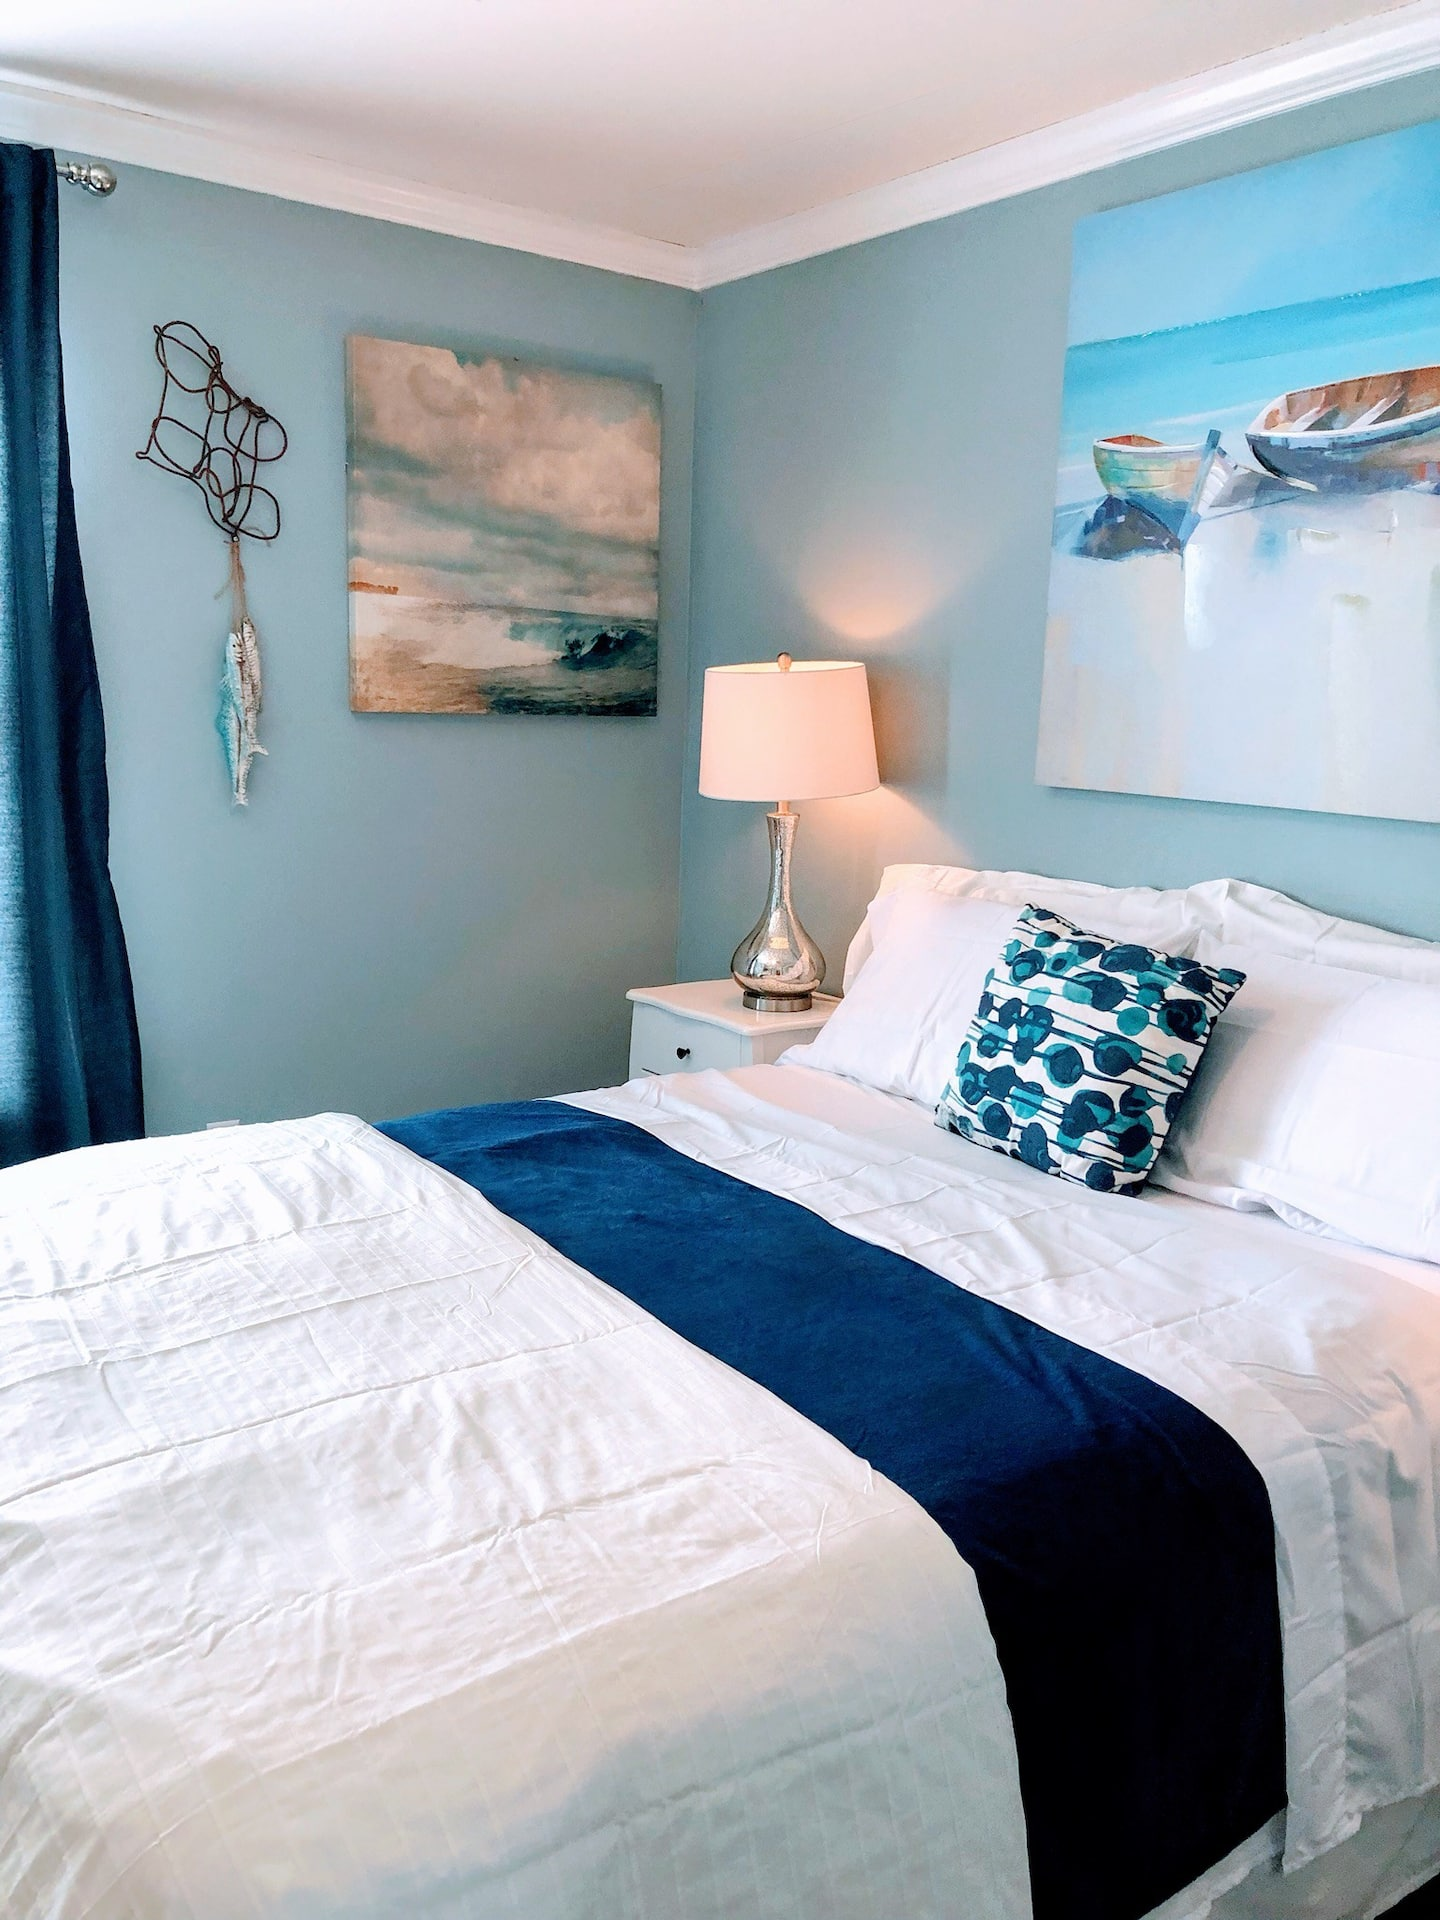 affordable airbnb gulf shores